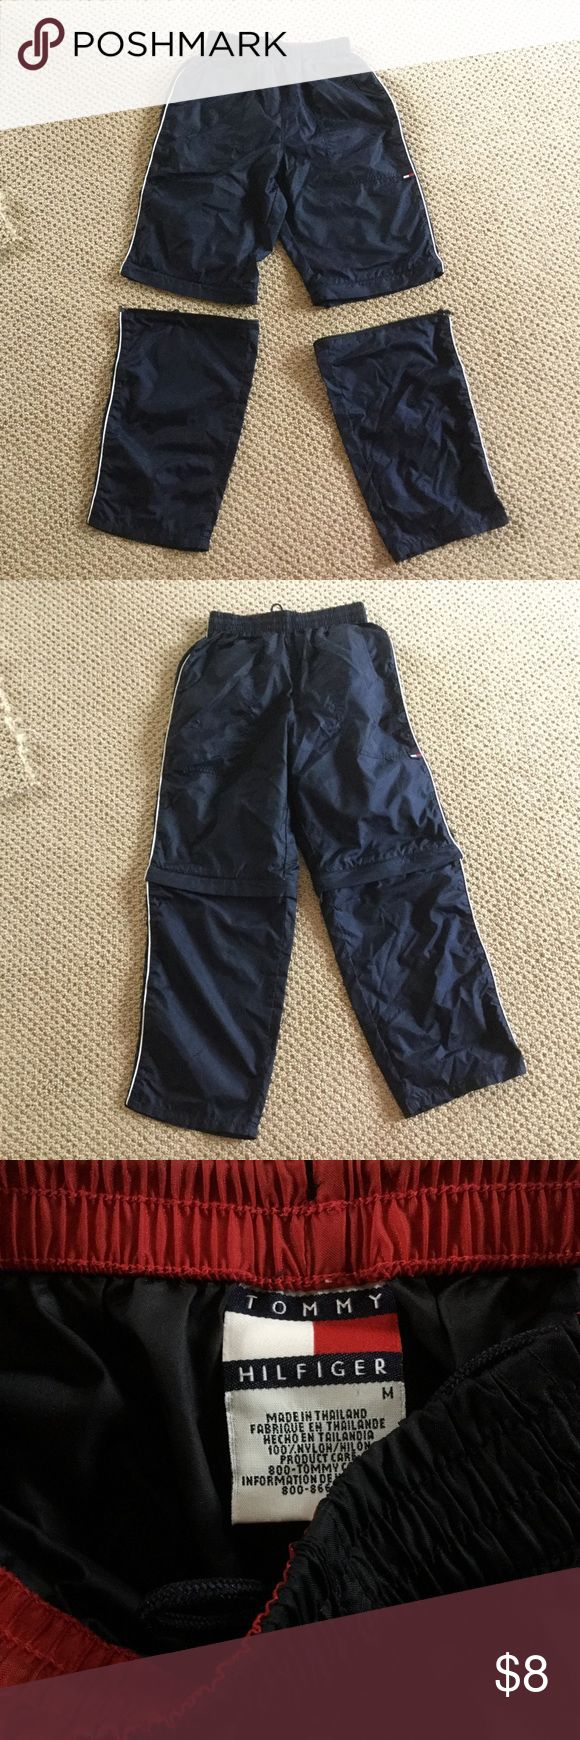 Tommy Hilfiger pants convert to shorts Tommy Hilfiger Windbreaker pants w/zippers to convert to shorts for boy's size M.  In excellent condition. Tommy Hilfiger Bottoms Sweatpants & Joggers